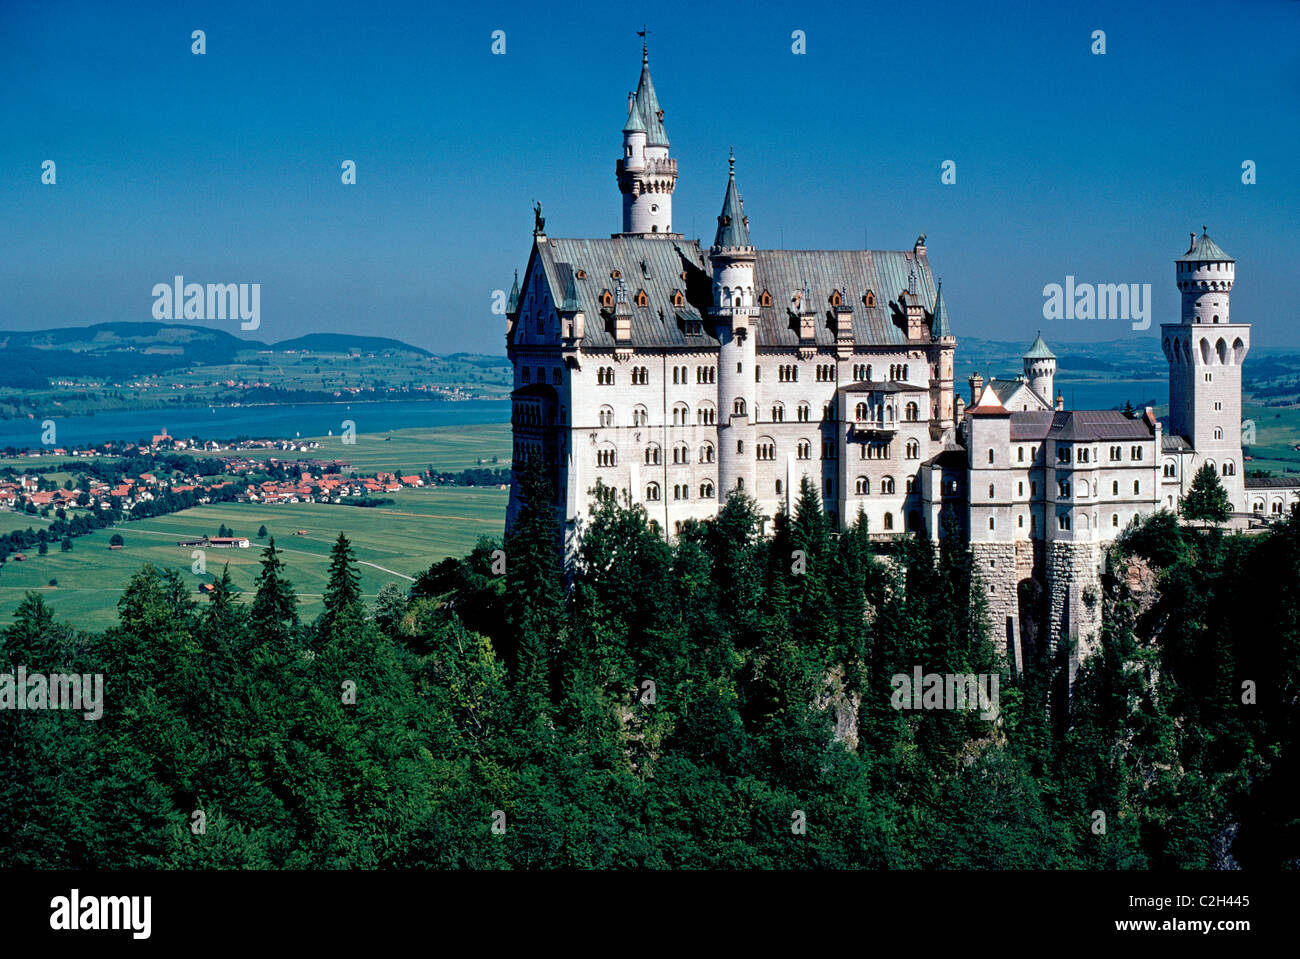 Neuschwanstein Castle is the famous 19th-century royal palace of Mad King Ludwig II on a hill above the village - Stock Image